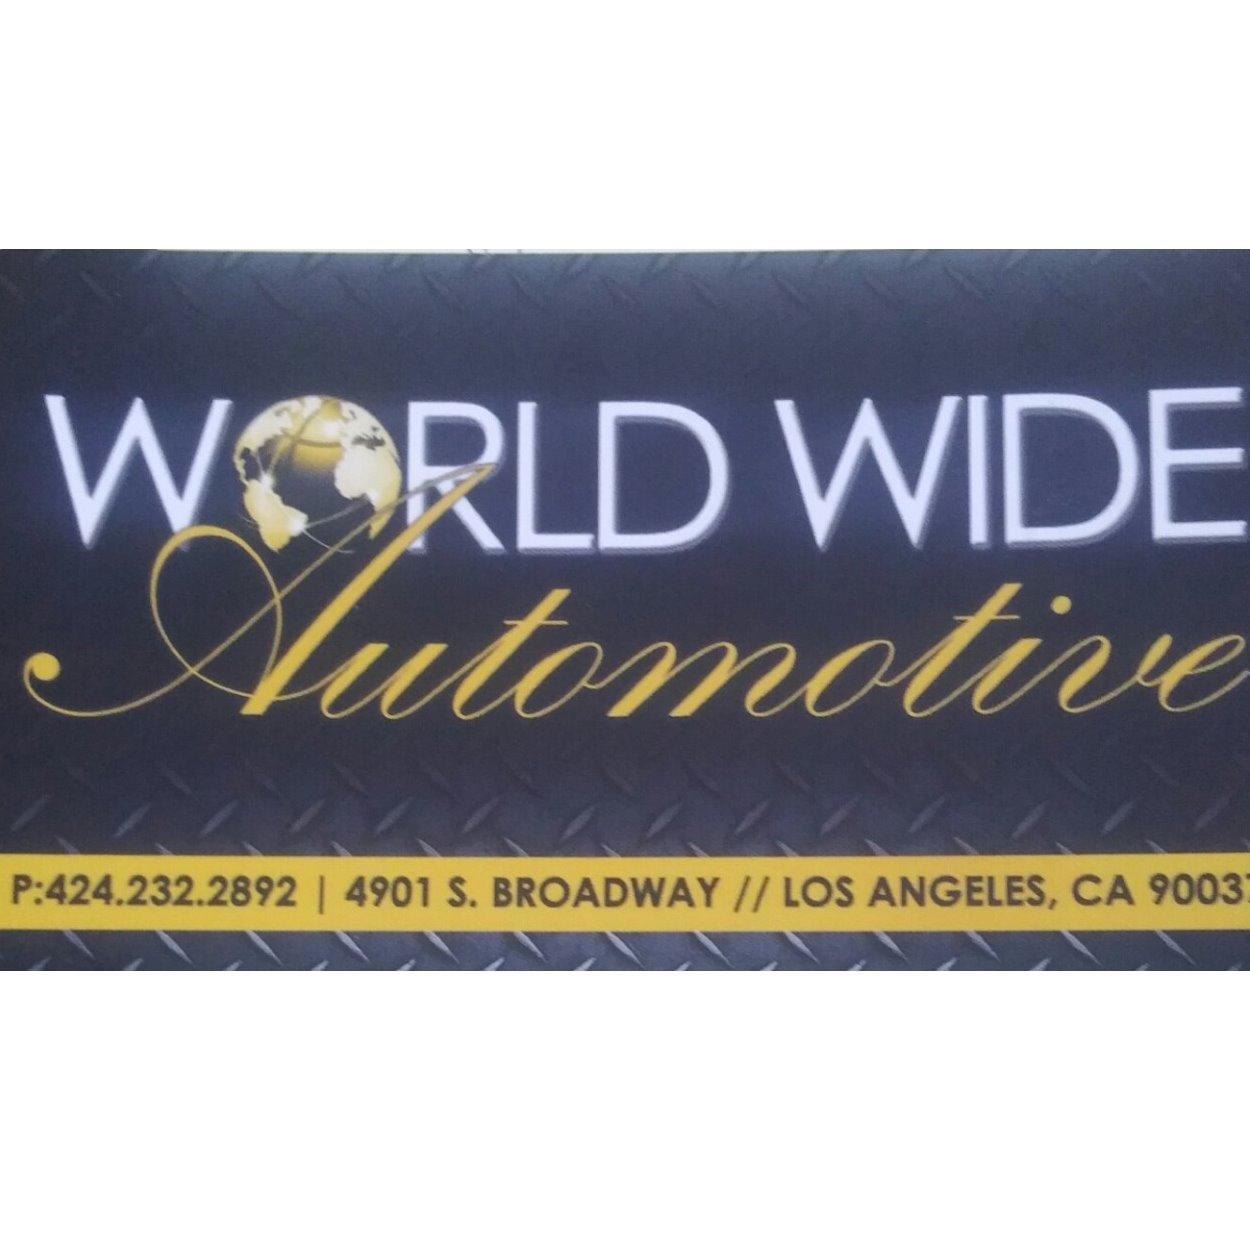 Worldwide Automotive